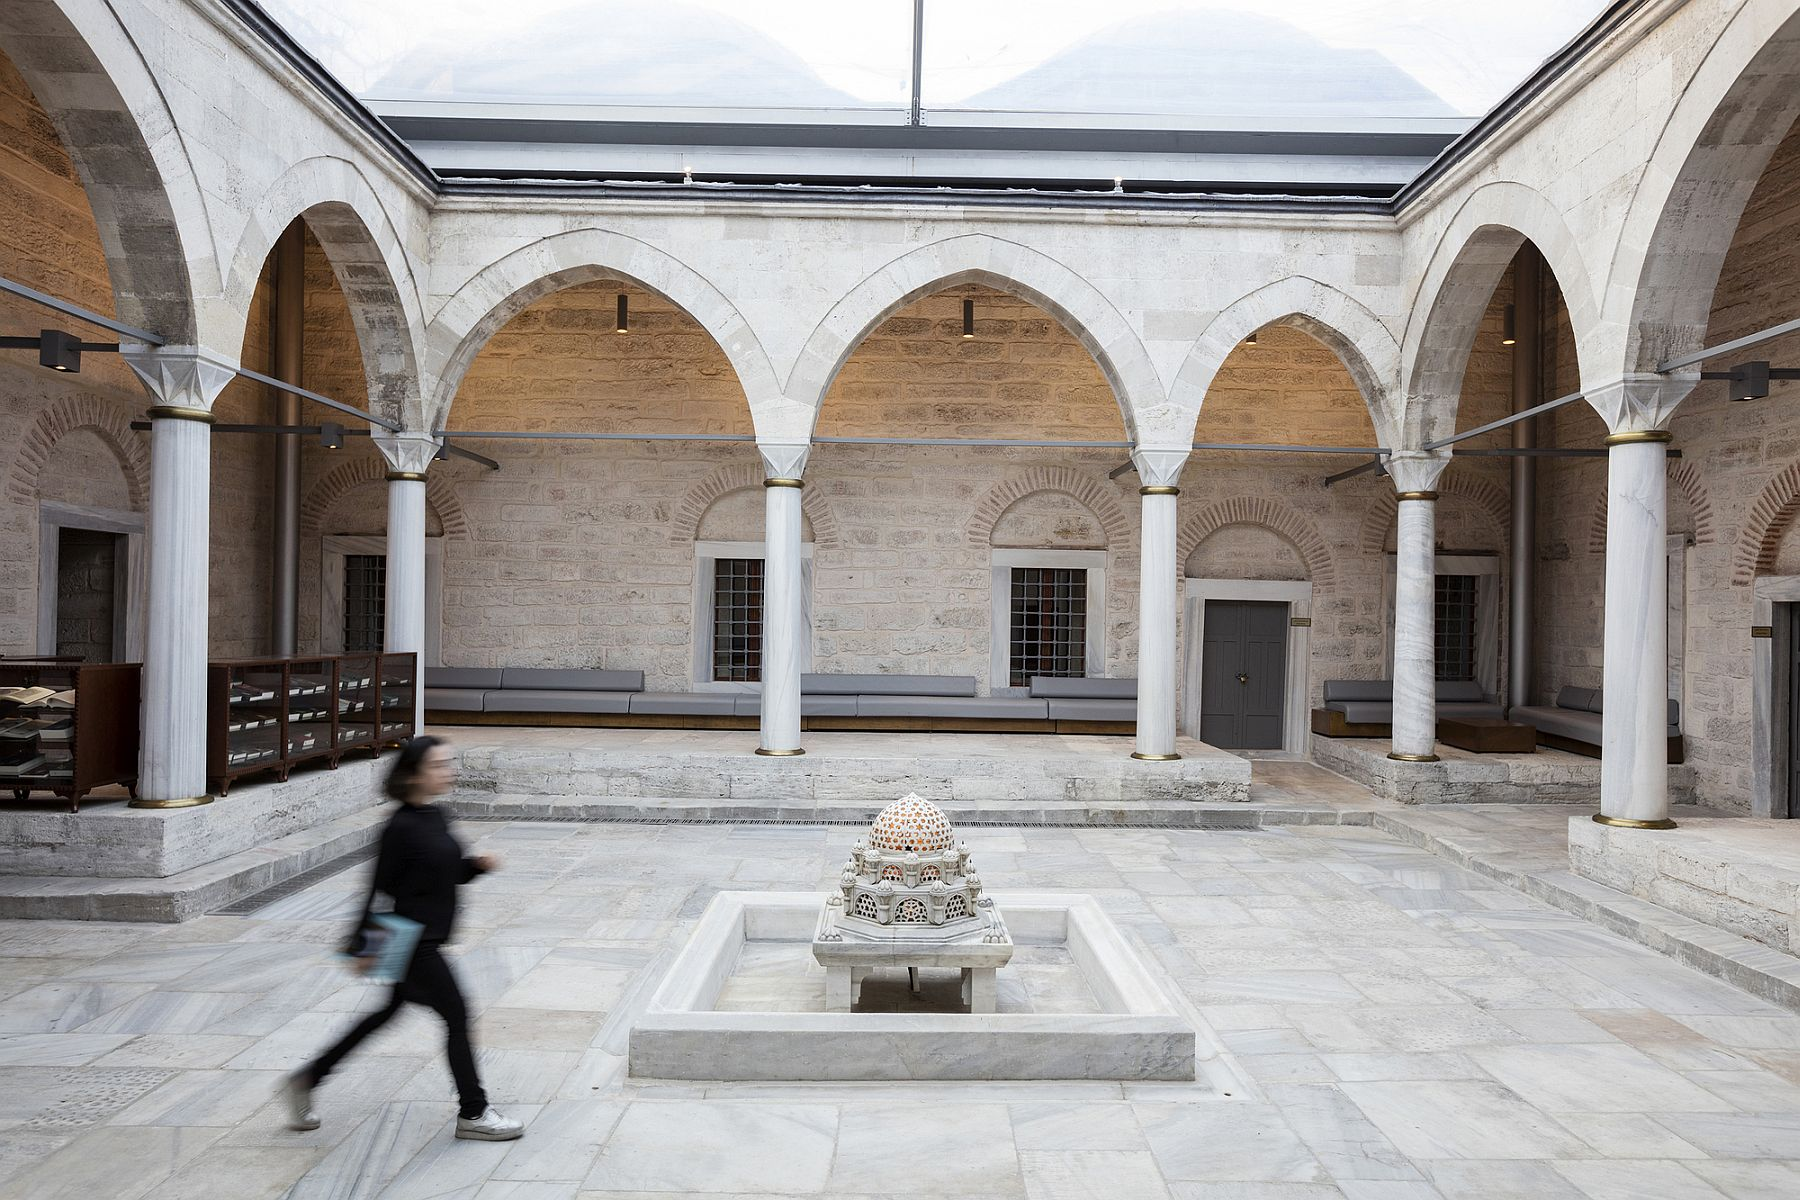 Open courtyard and entrance to the revitalized library